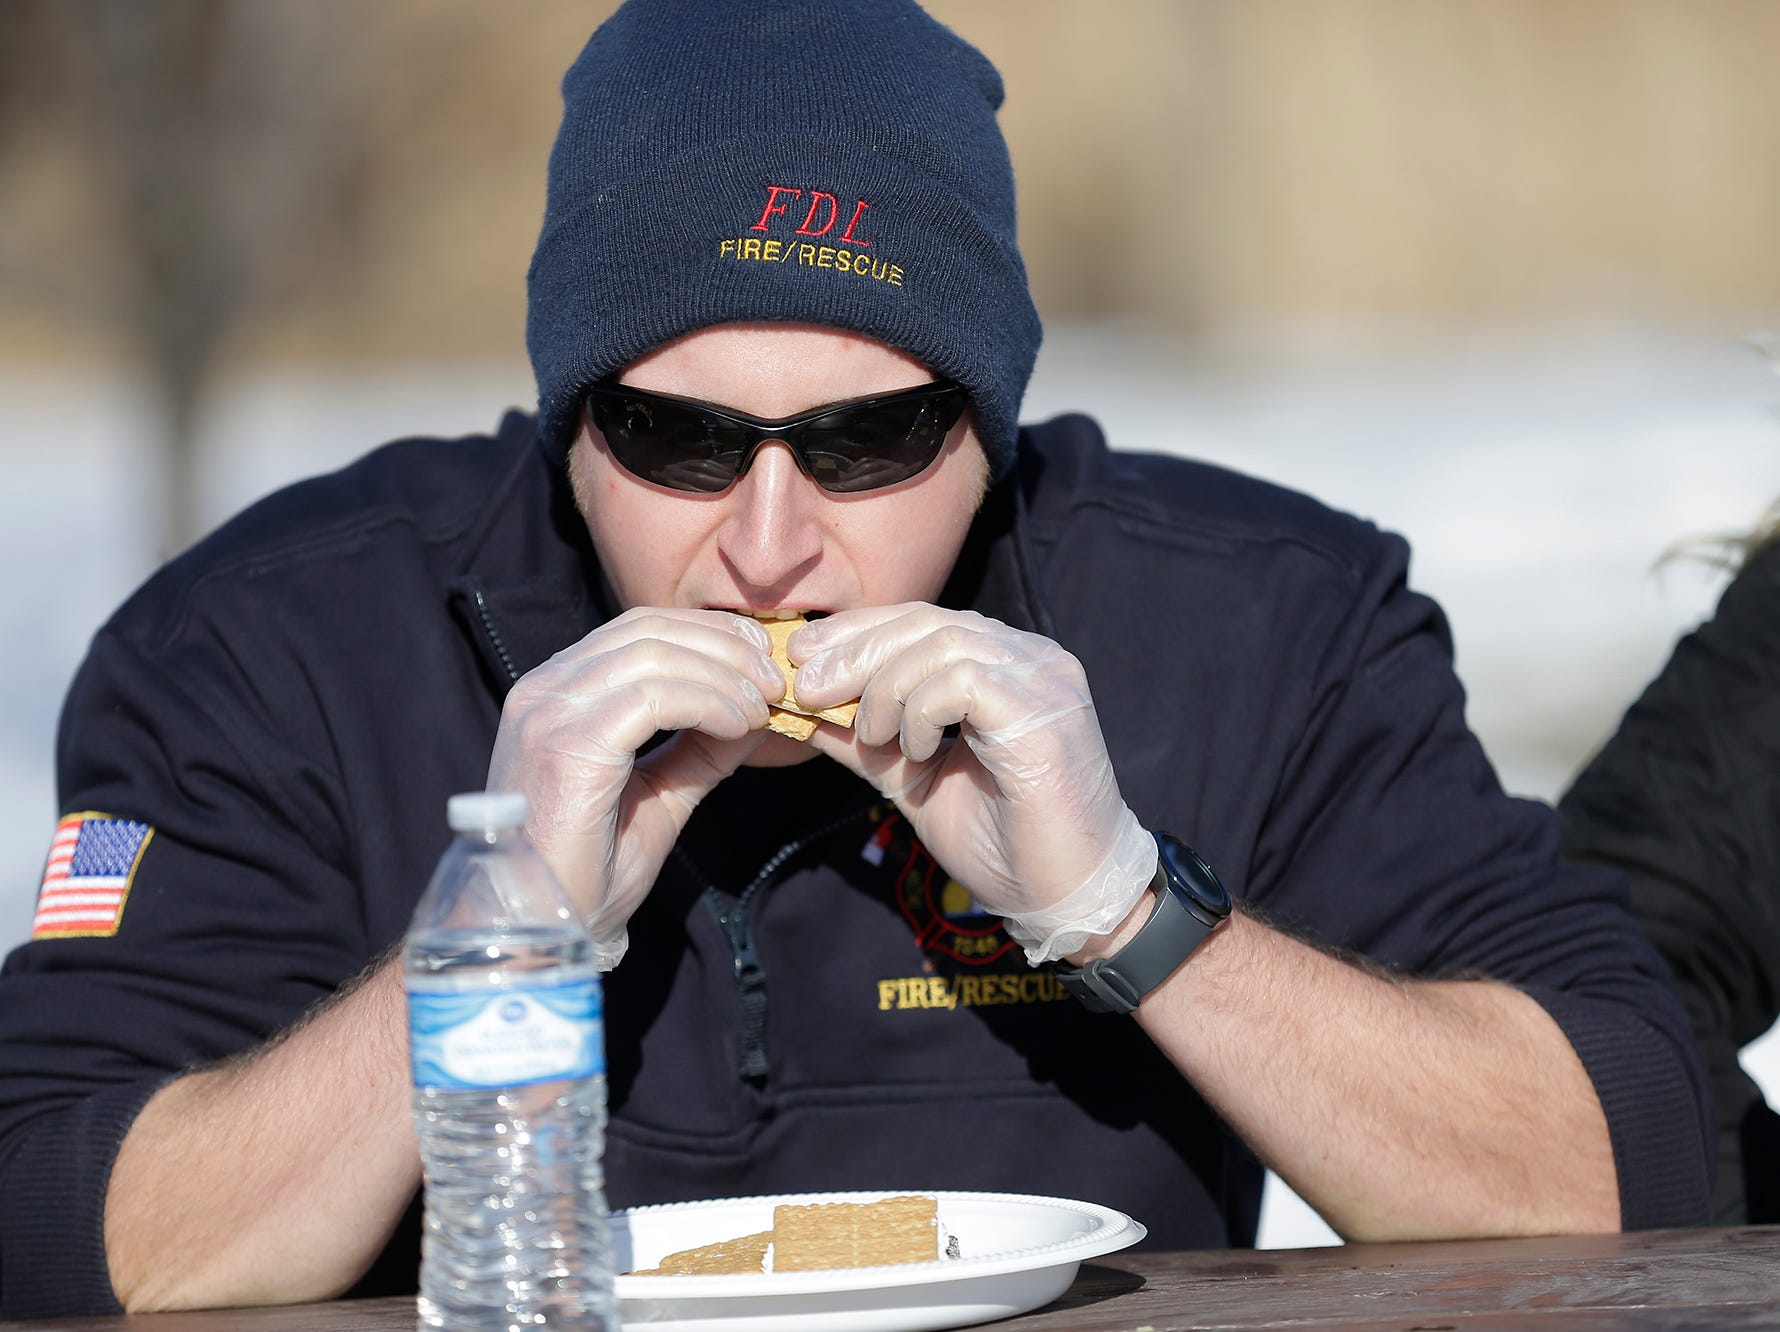 Connor Knaus of Fond du lac Fire/Rescue competes in the s'mores eating contest at Winterfest Saturday, January 5, 2019 at Hamilton park in Fond du Lac, Wisconsin. Doug Raflik/USA TODAY NETWORK-Wisconsin